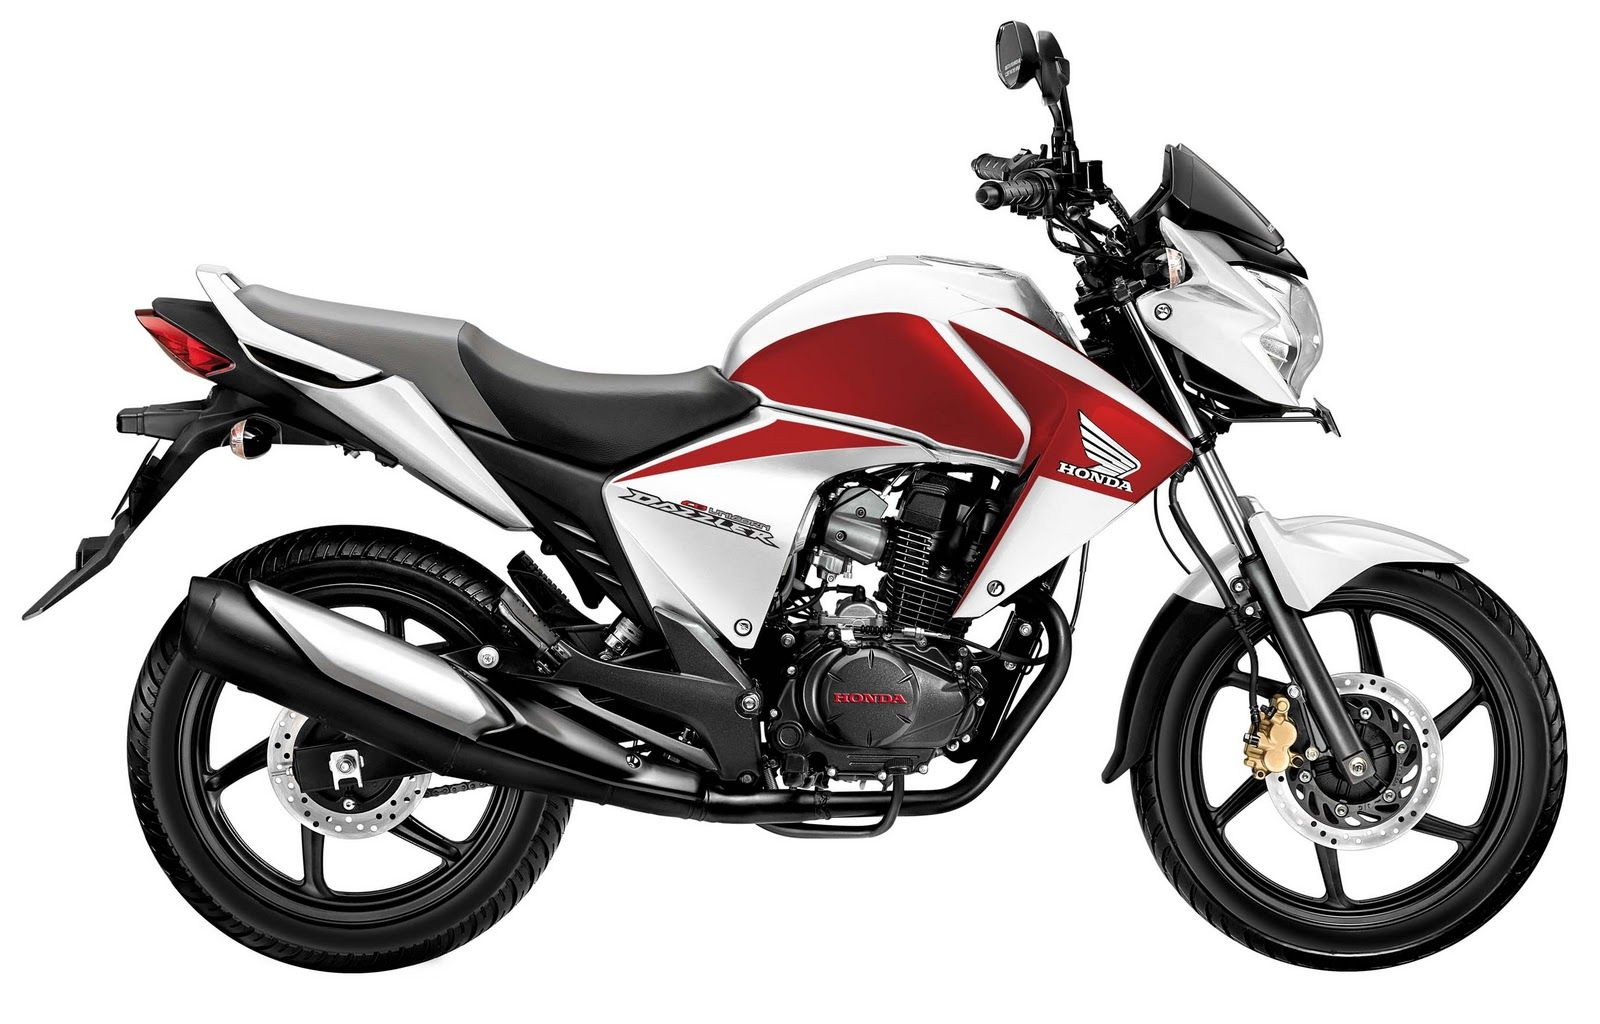 Prize of honda motorcycles philippines - Launching Soon New Stylish Look And Best Performance Bajaj Kawasaki Ninja Krr Zx150 Bike In India Online Honda Unicorn Bikes India Pinterest Kawasaki